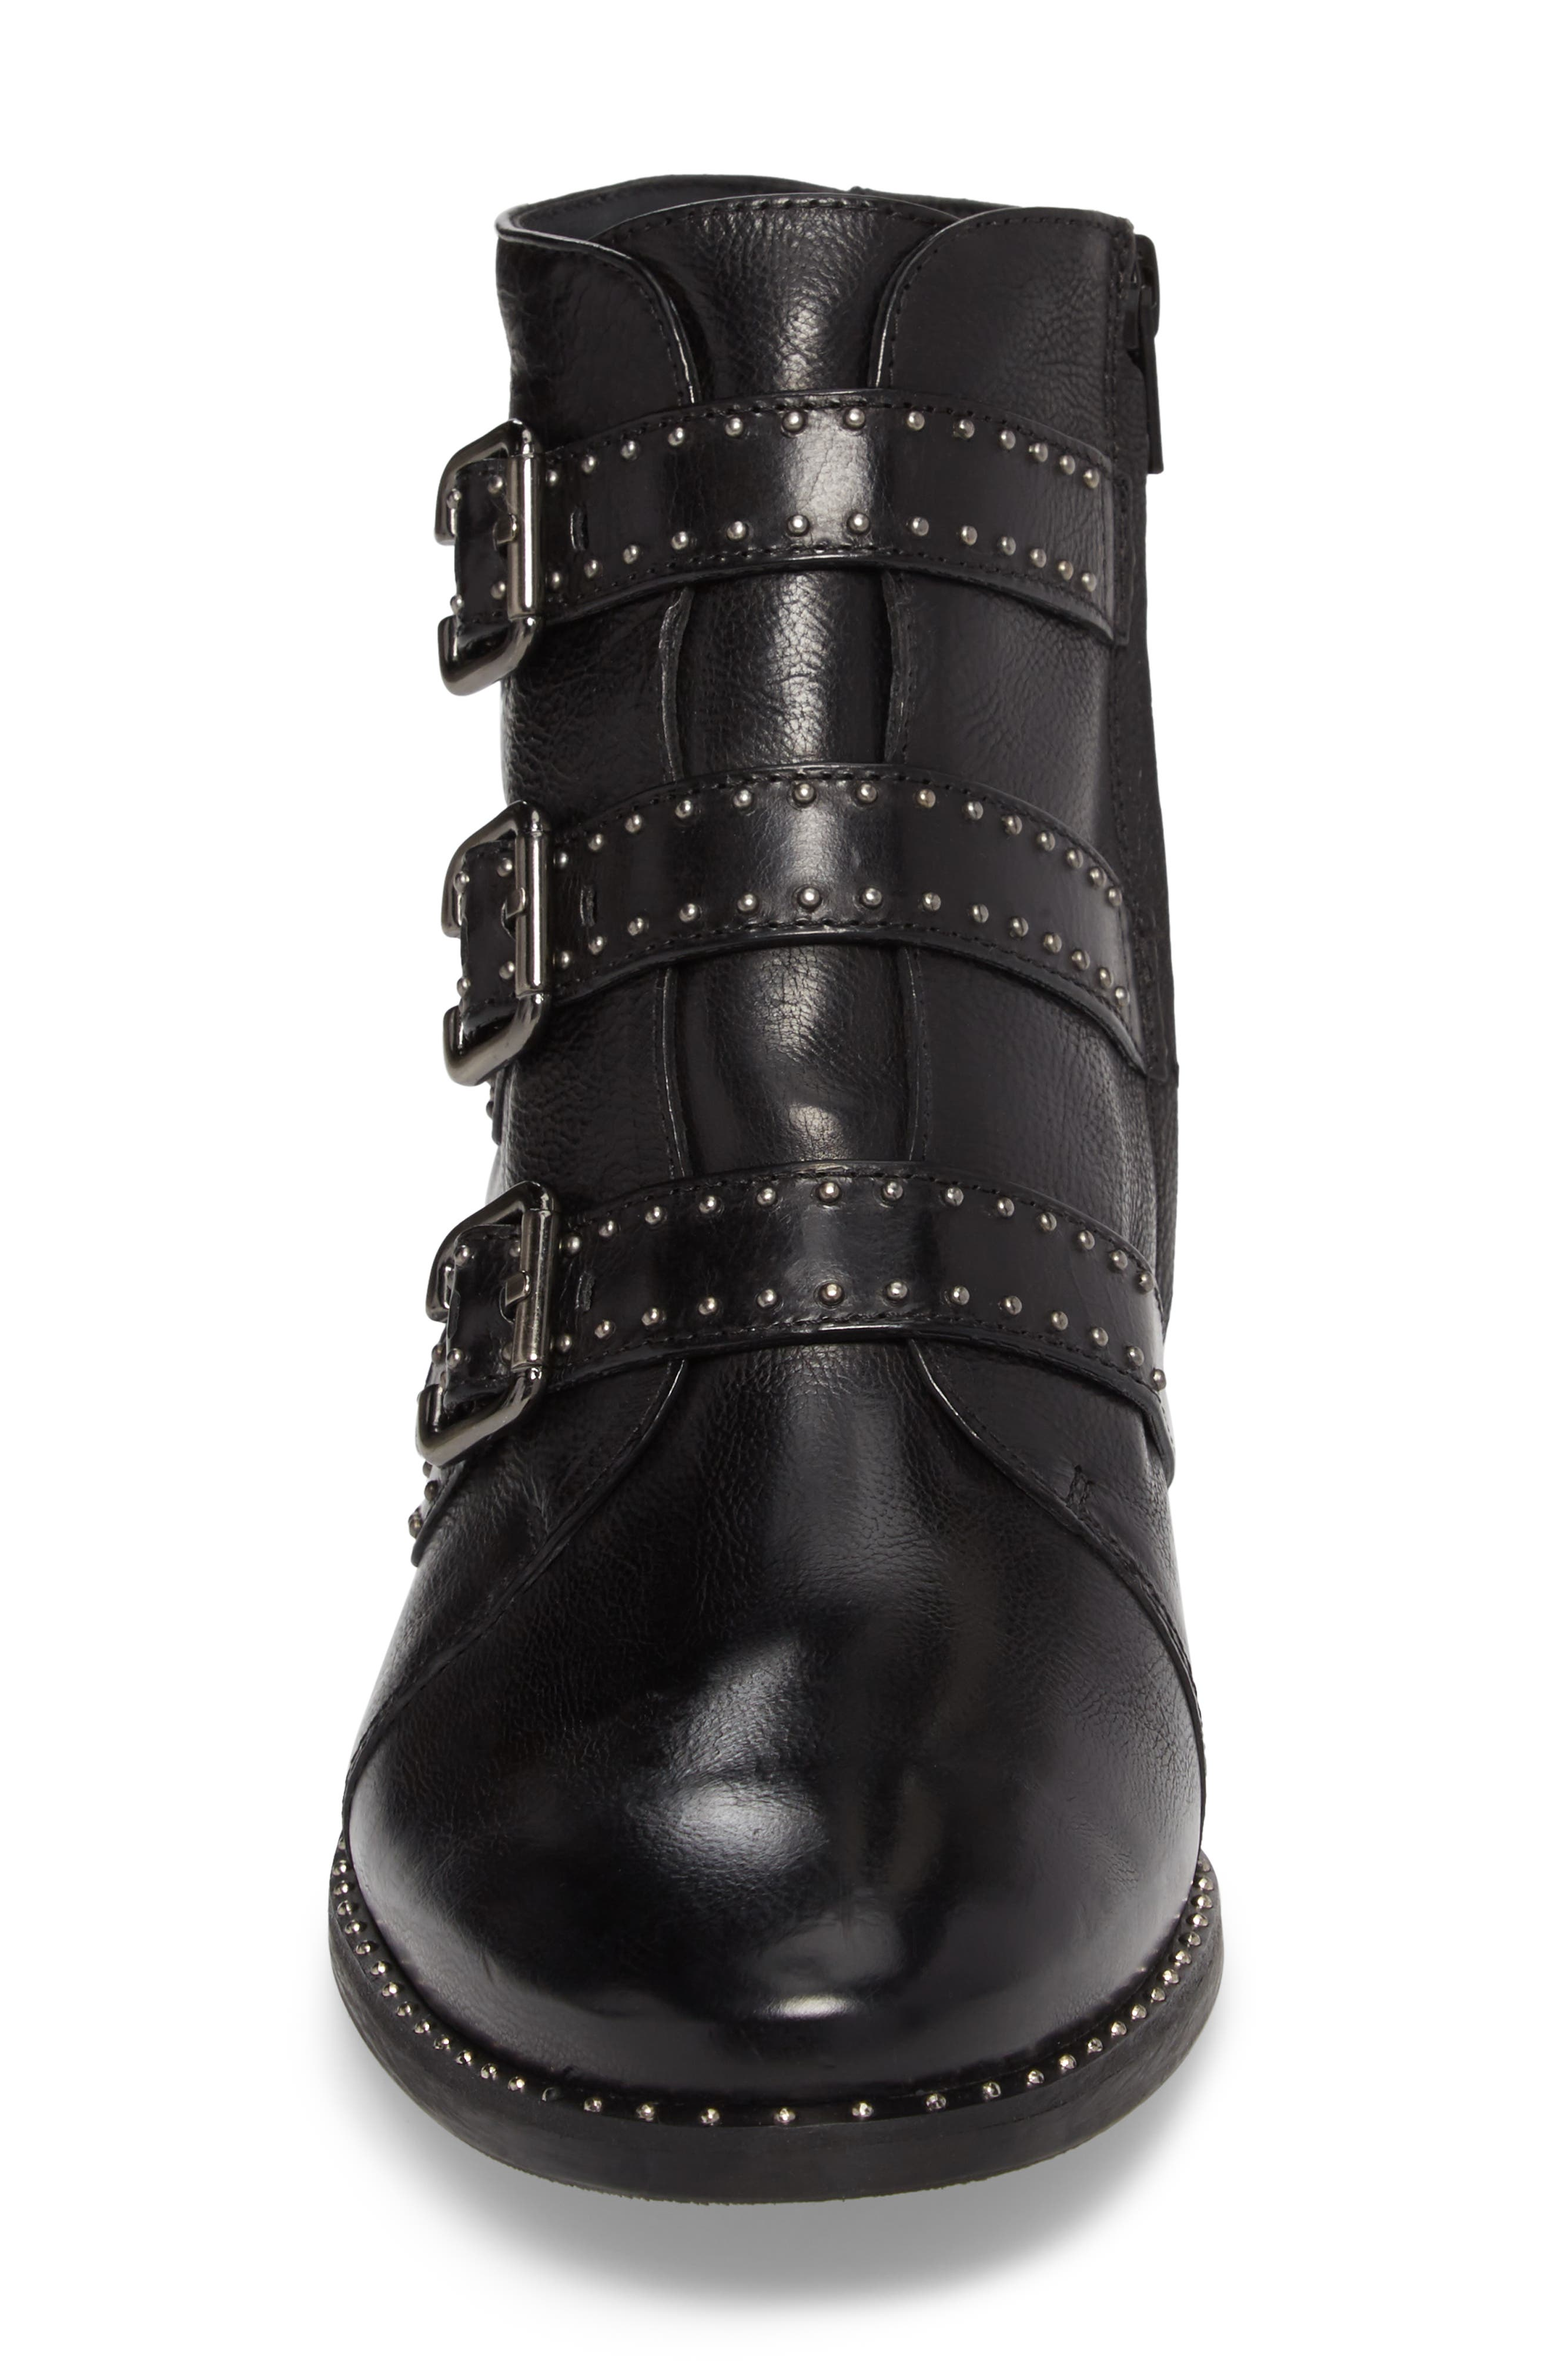 Soho Bootie,                             Alternate thumbnail 4, color,                             BLACK LEATHER